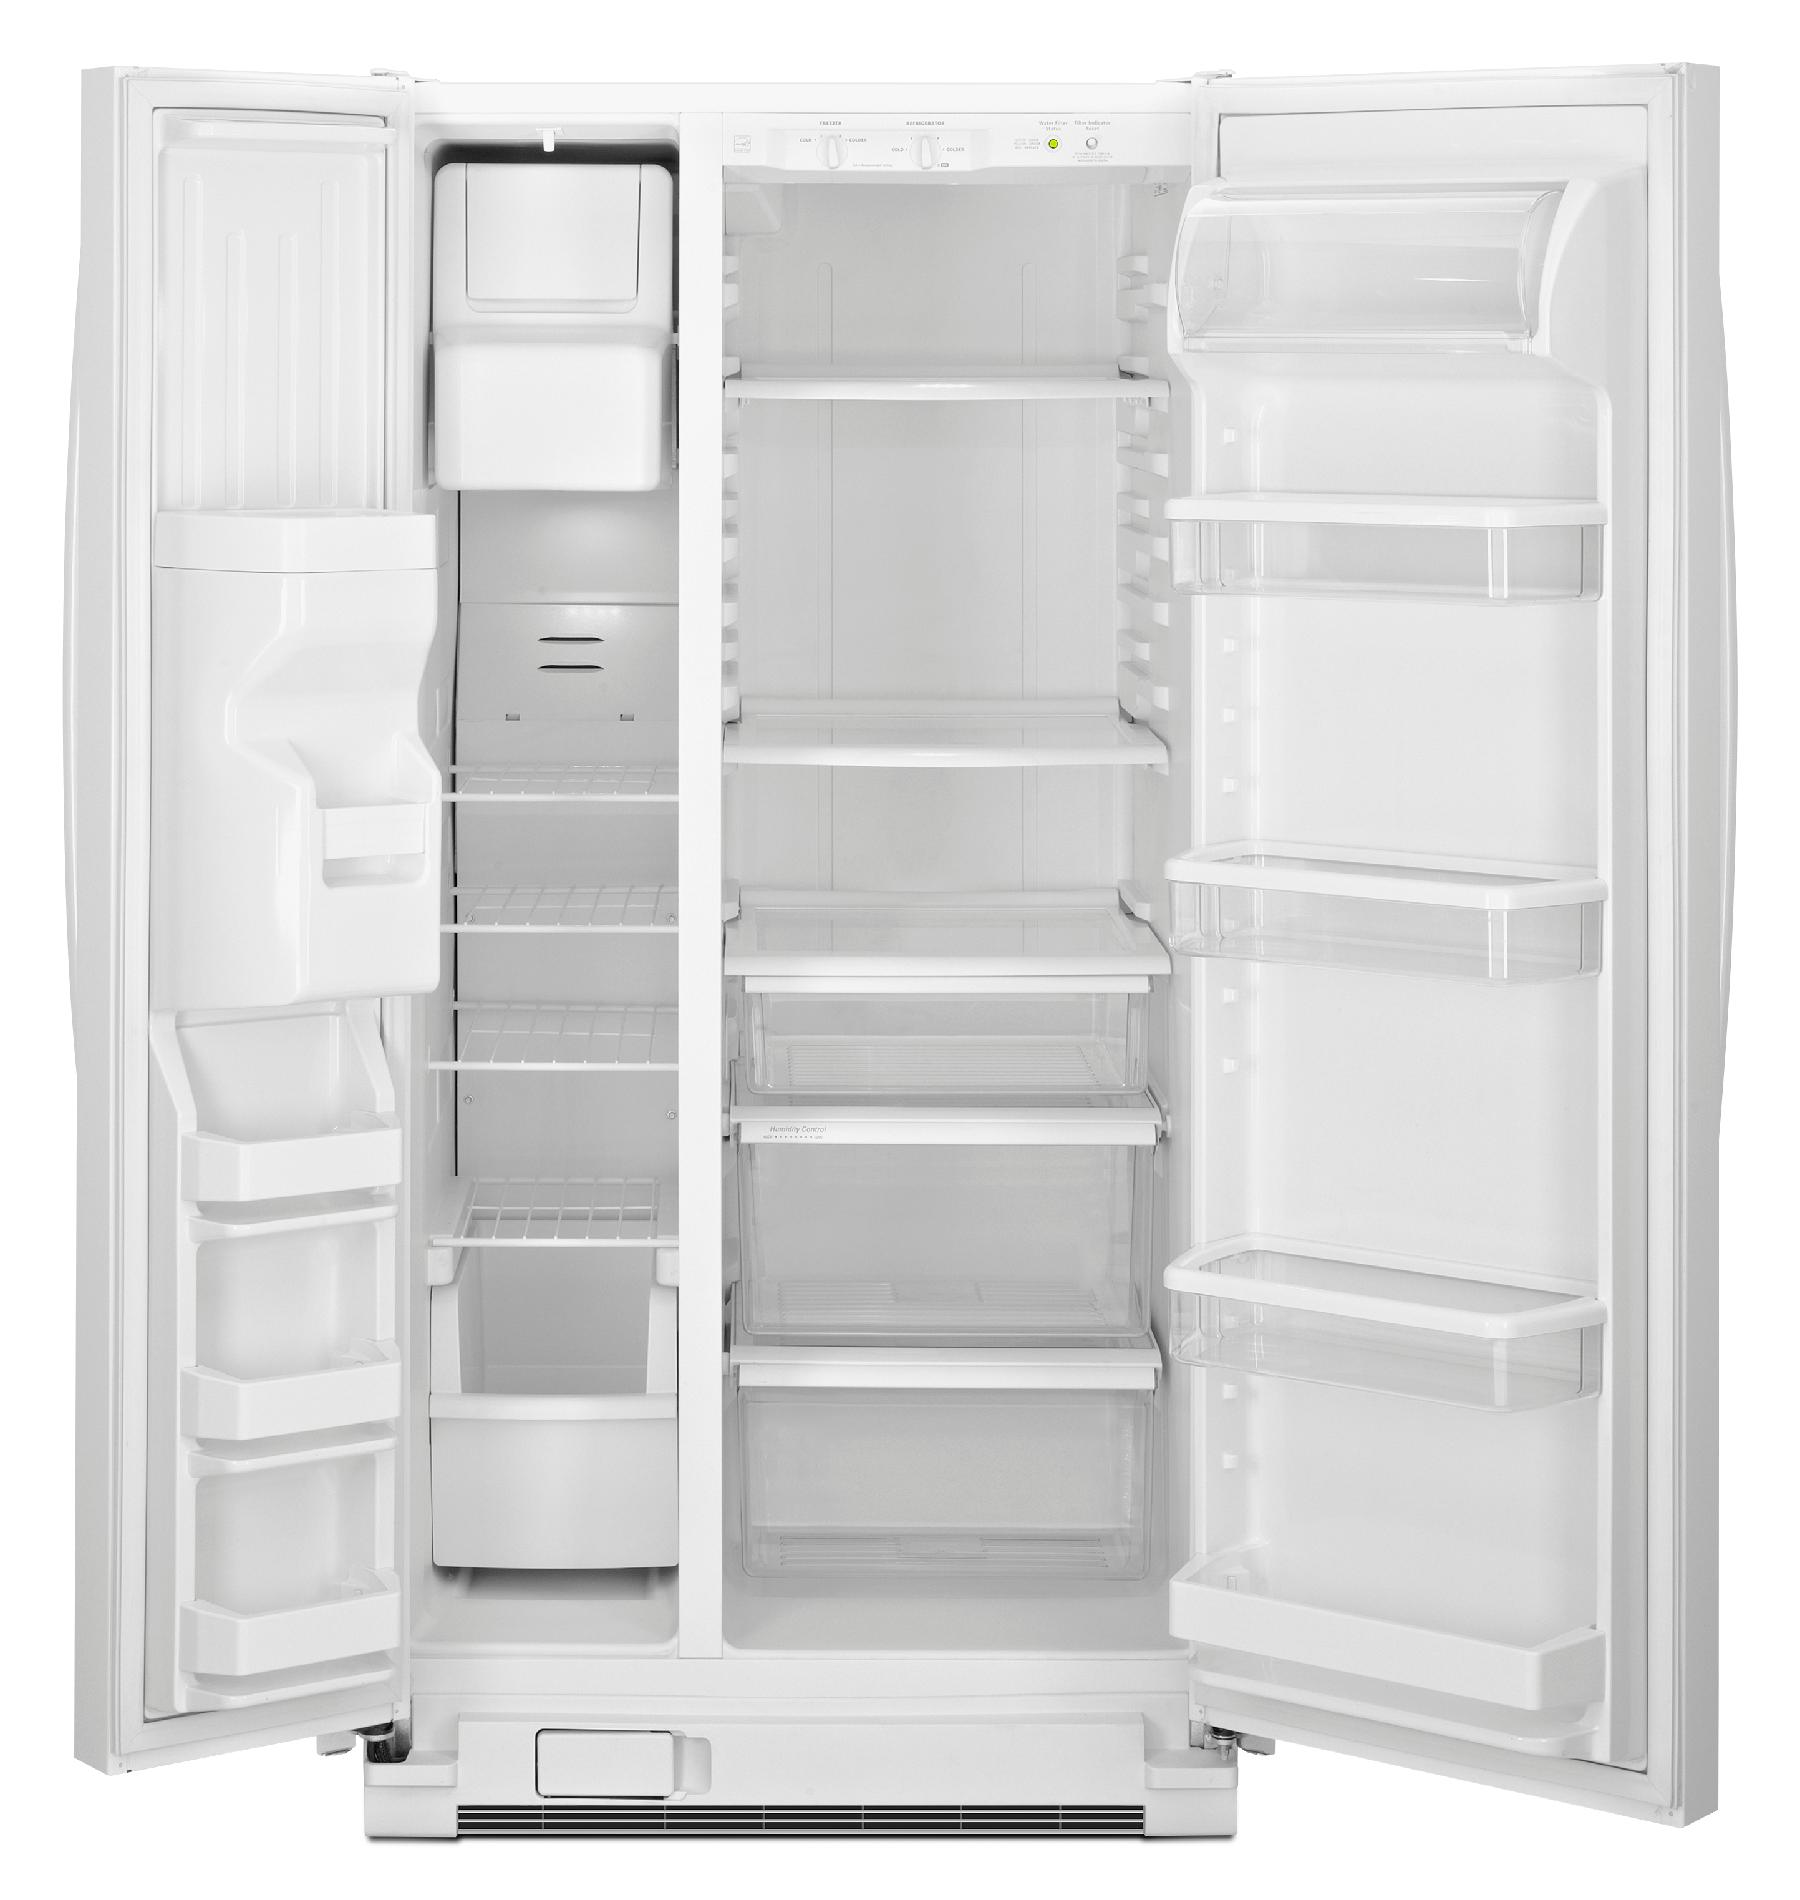 Maytag 22 cu. ft. Side-by-Side Refrigerator w/ Ice & Water Dispenser - White